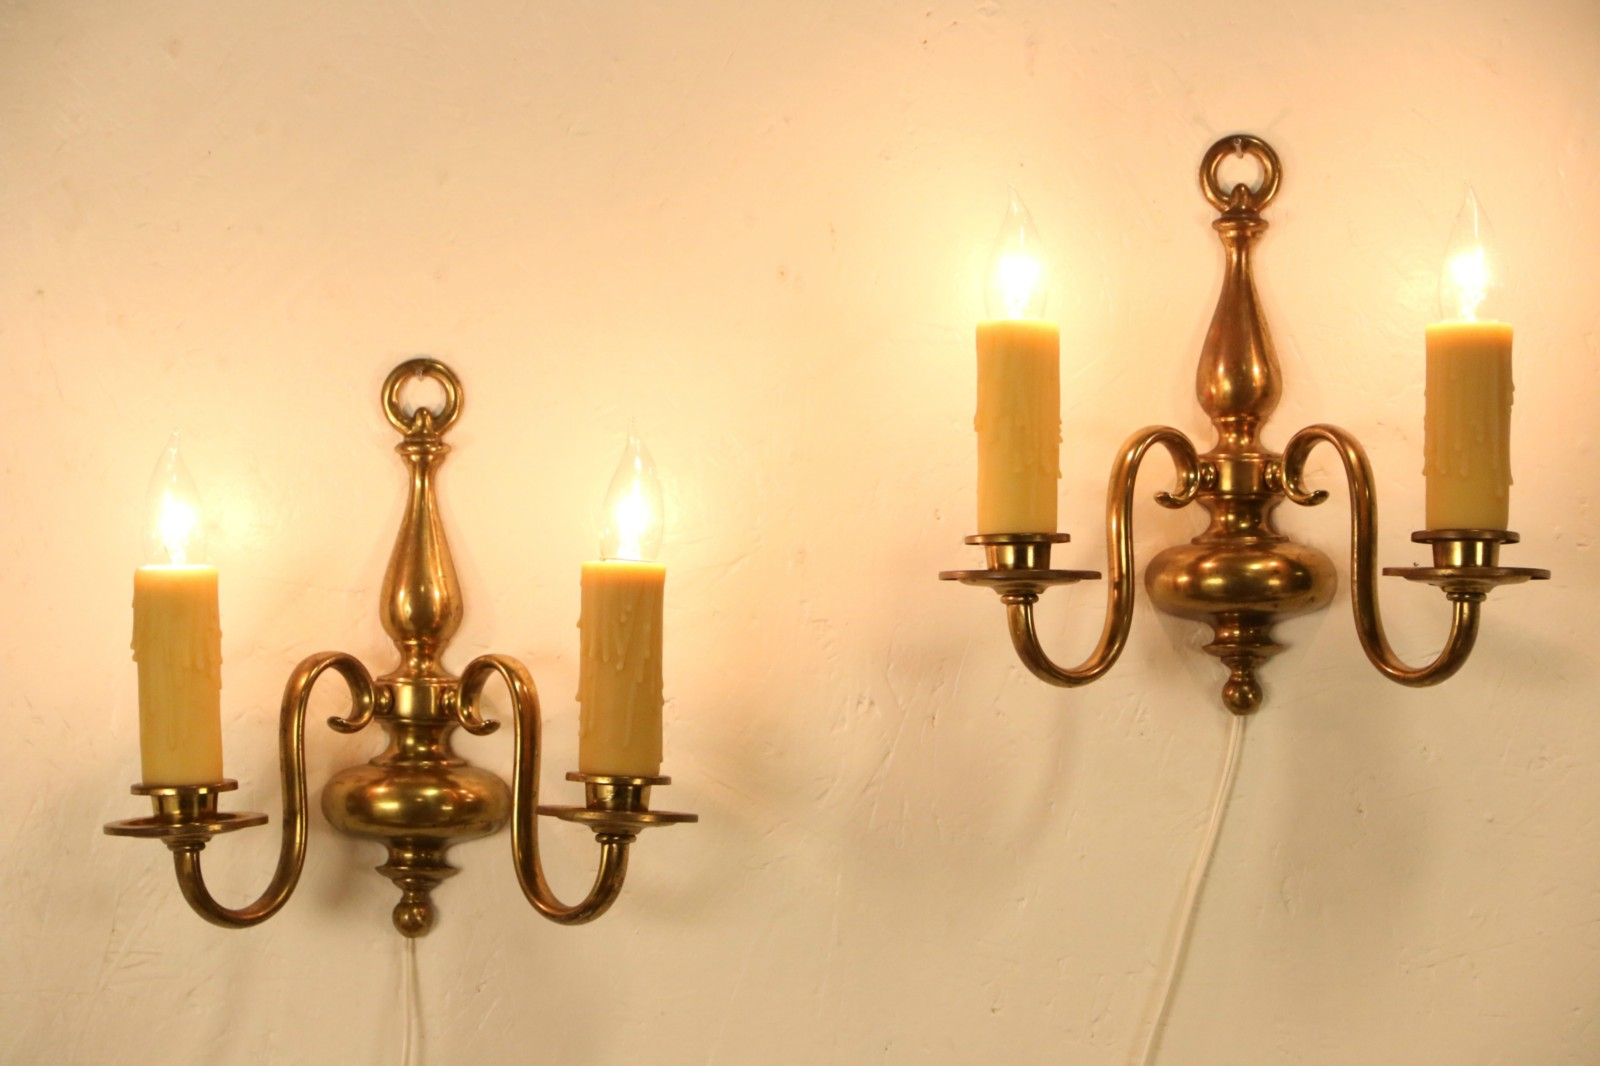 Wall Sconces For Wax Candles : SOLD - Pair of 1910 Antique Brass Wall Sconce Lights, Beeswax Candles - Harp Gallery Antique ...